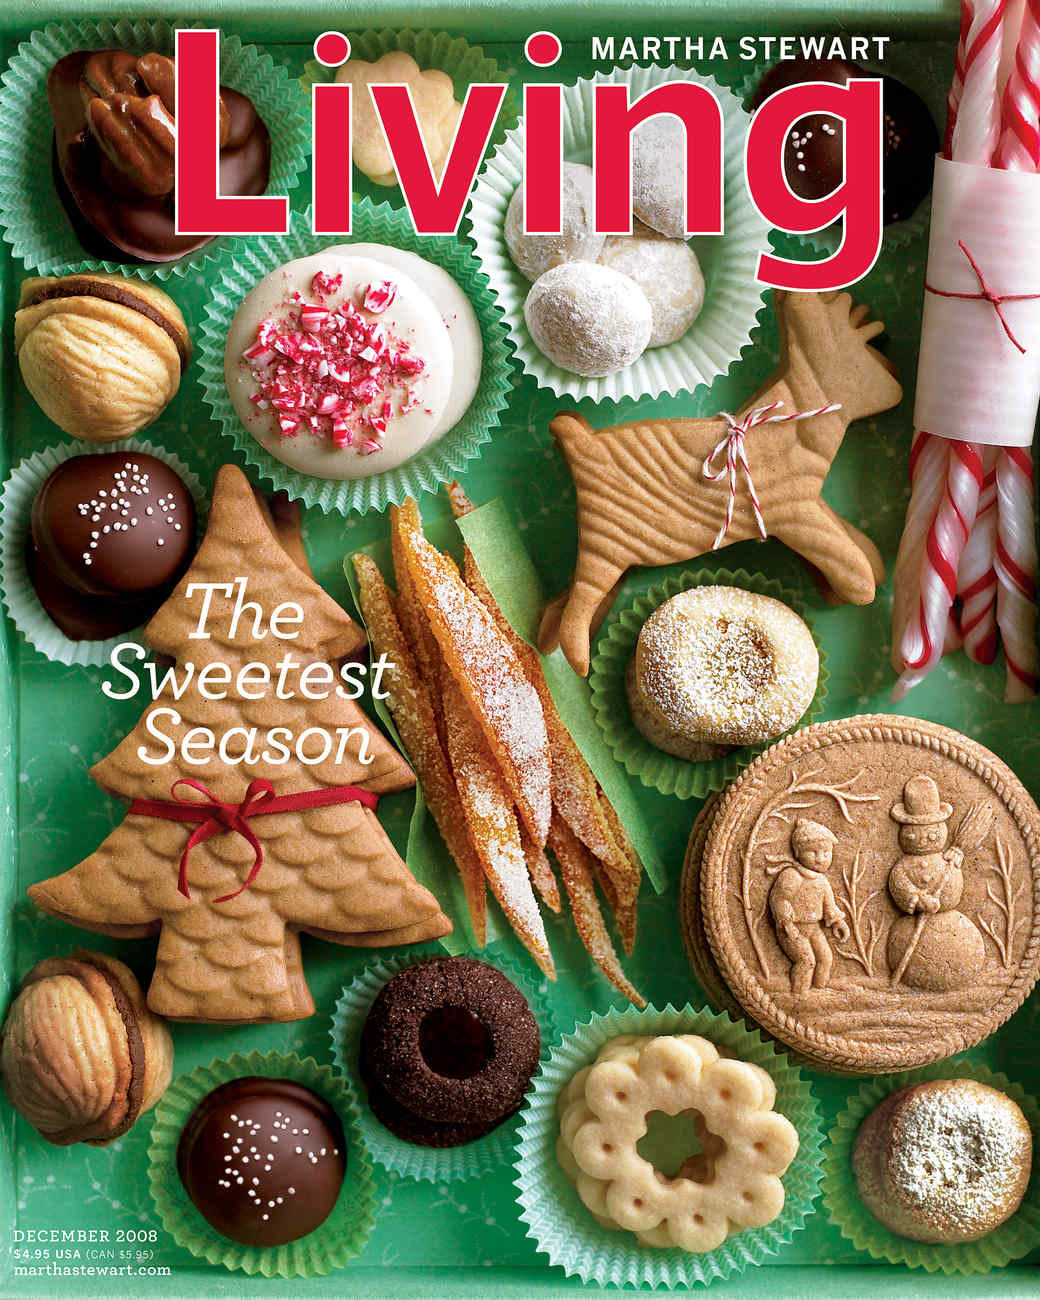 msl-cover-holiday-2008.jpg